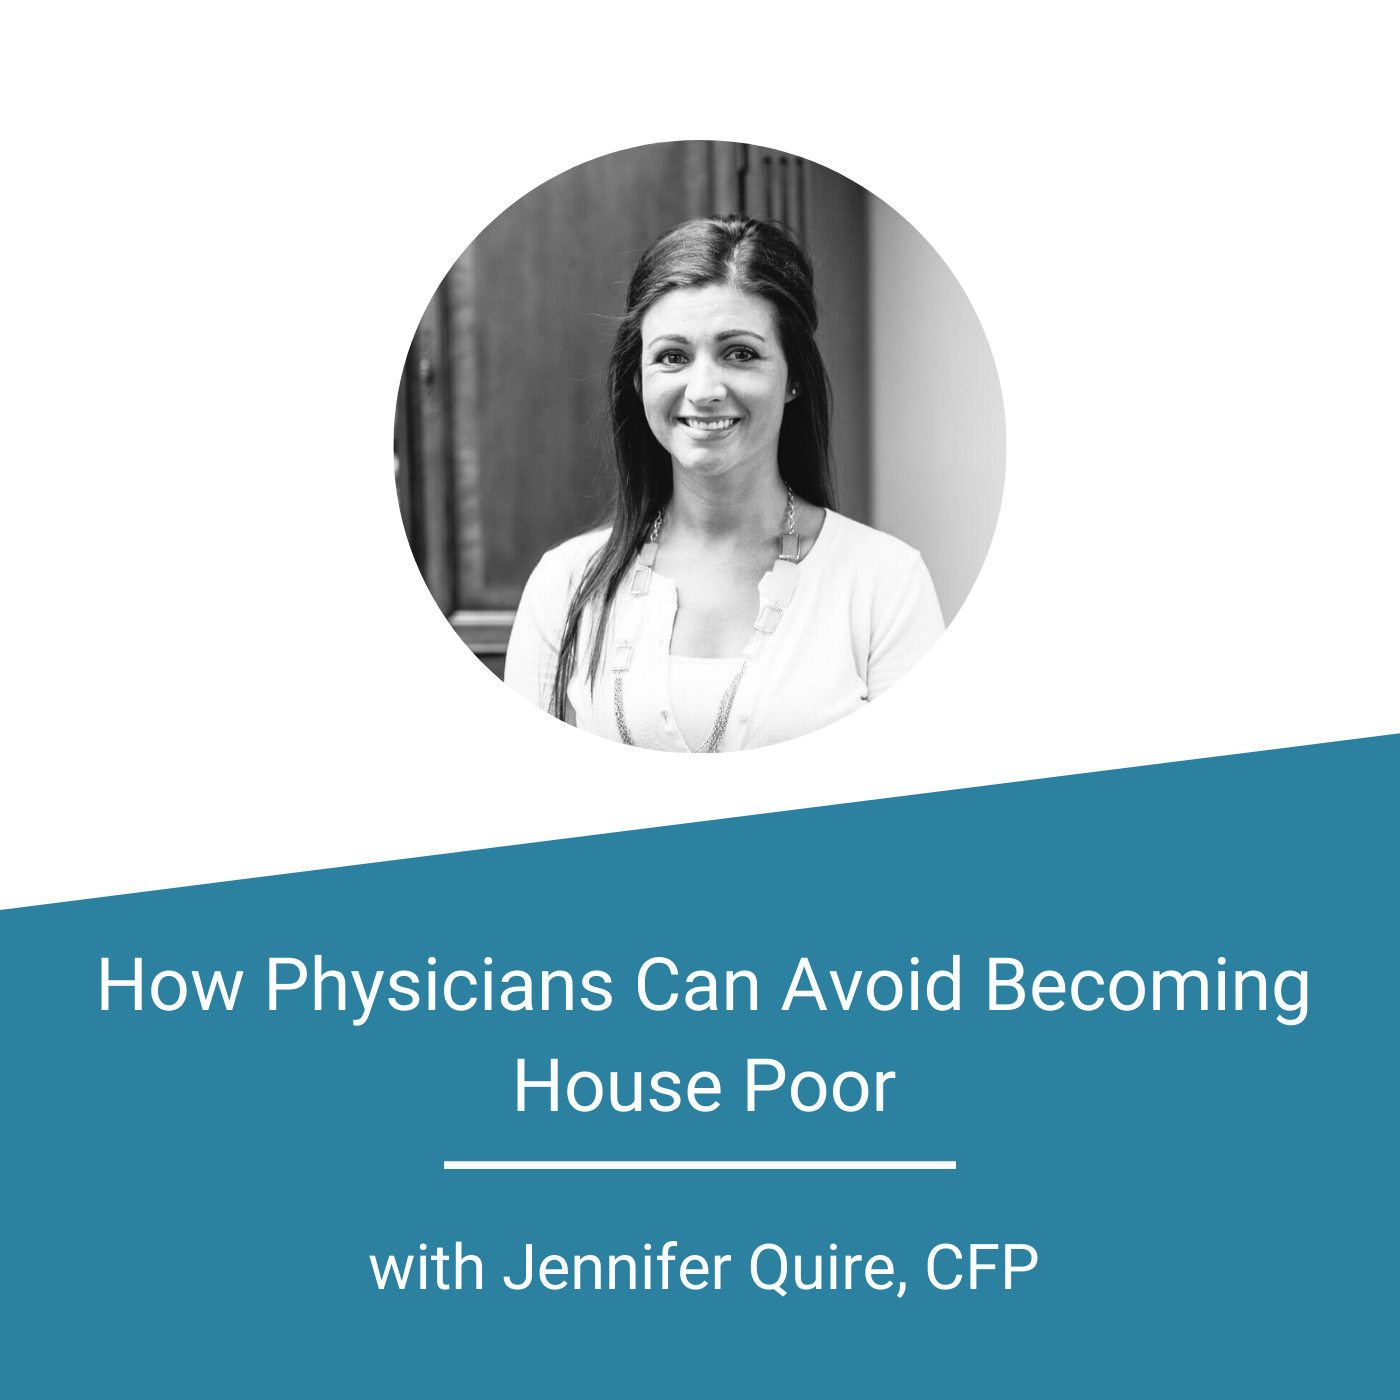 Featured Image - How Physicians Can Avoid Becoming House Poor